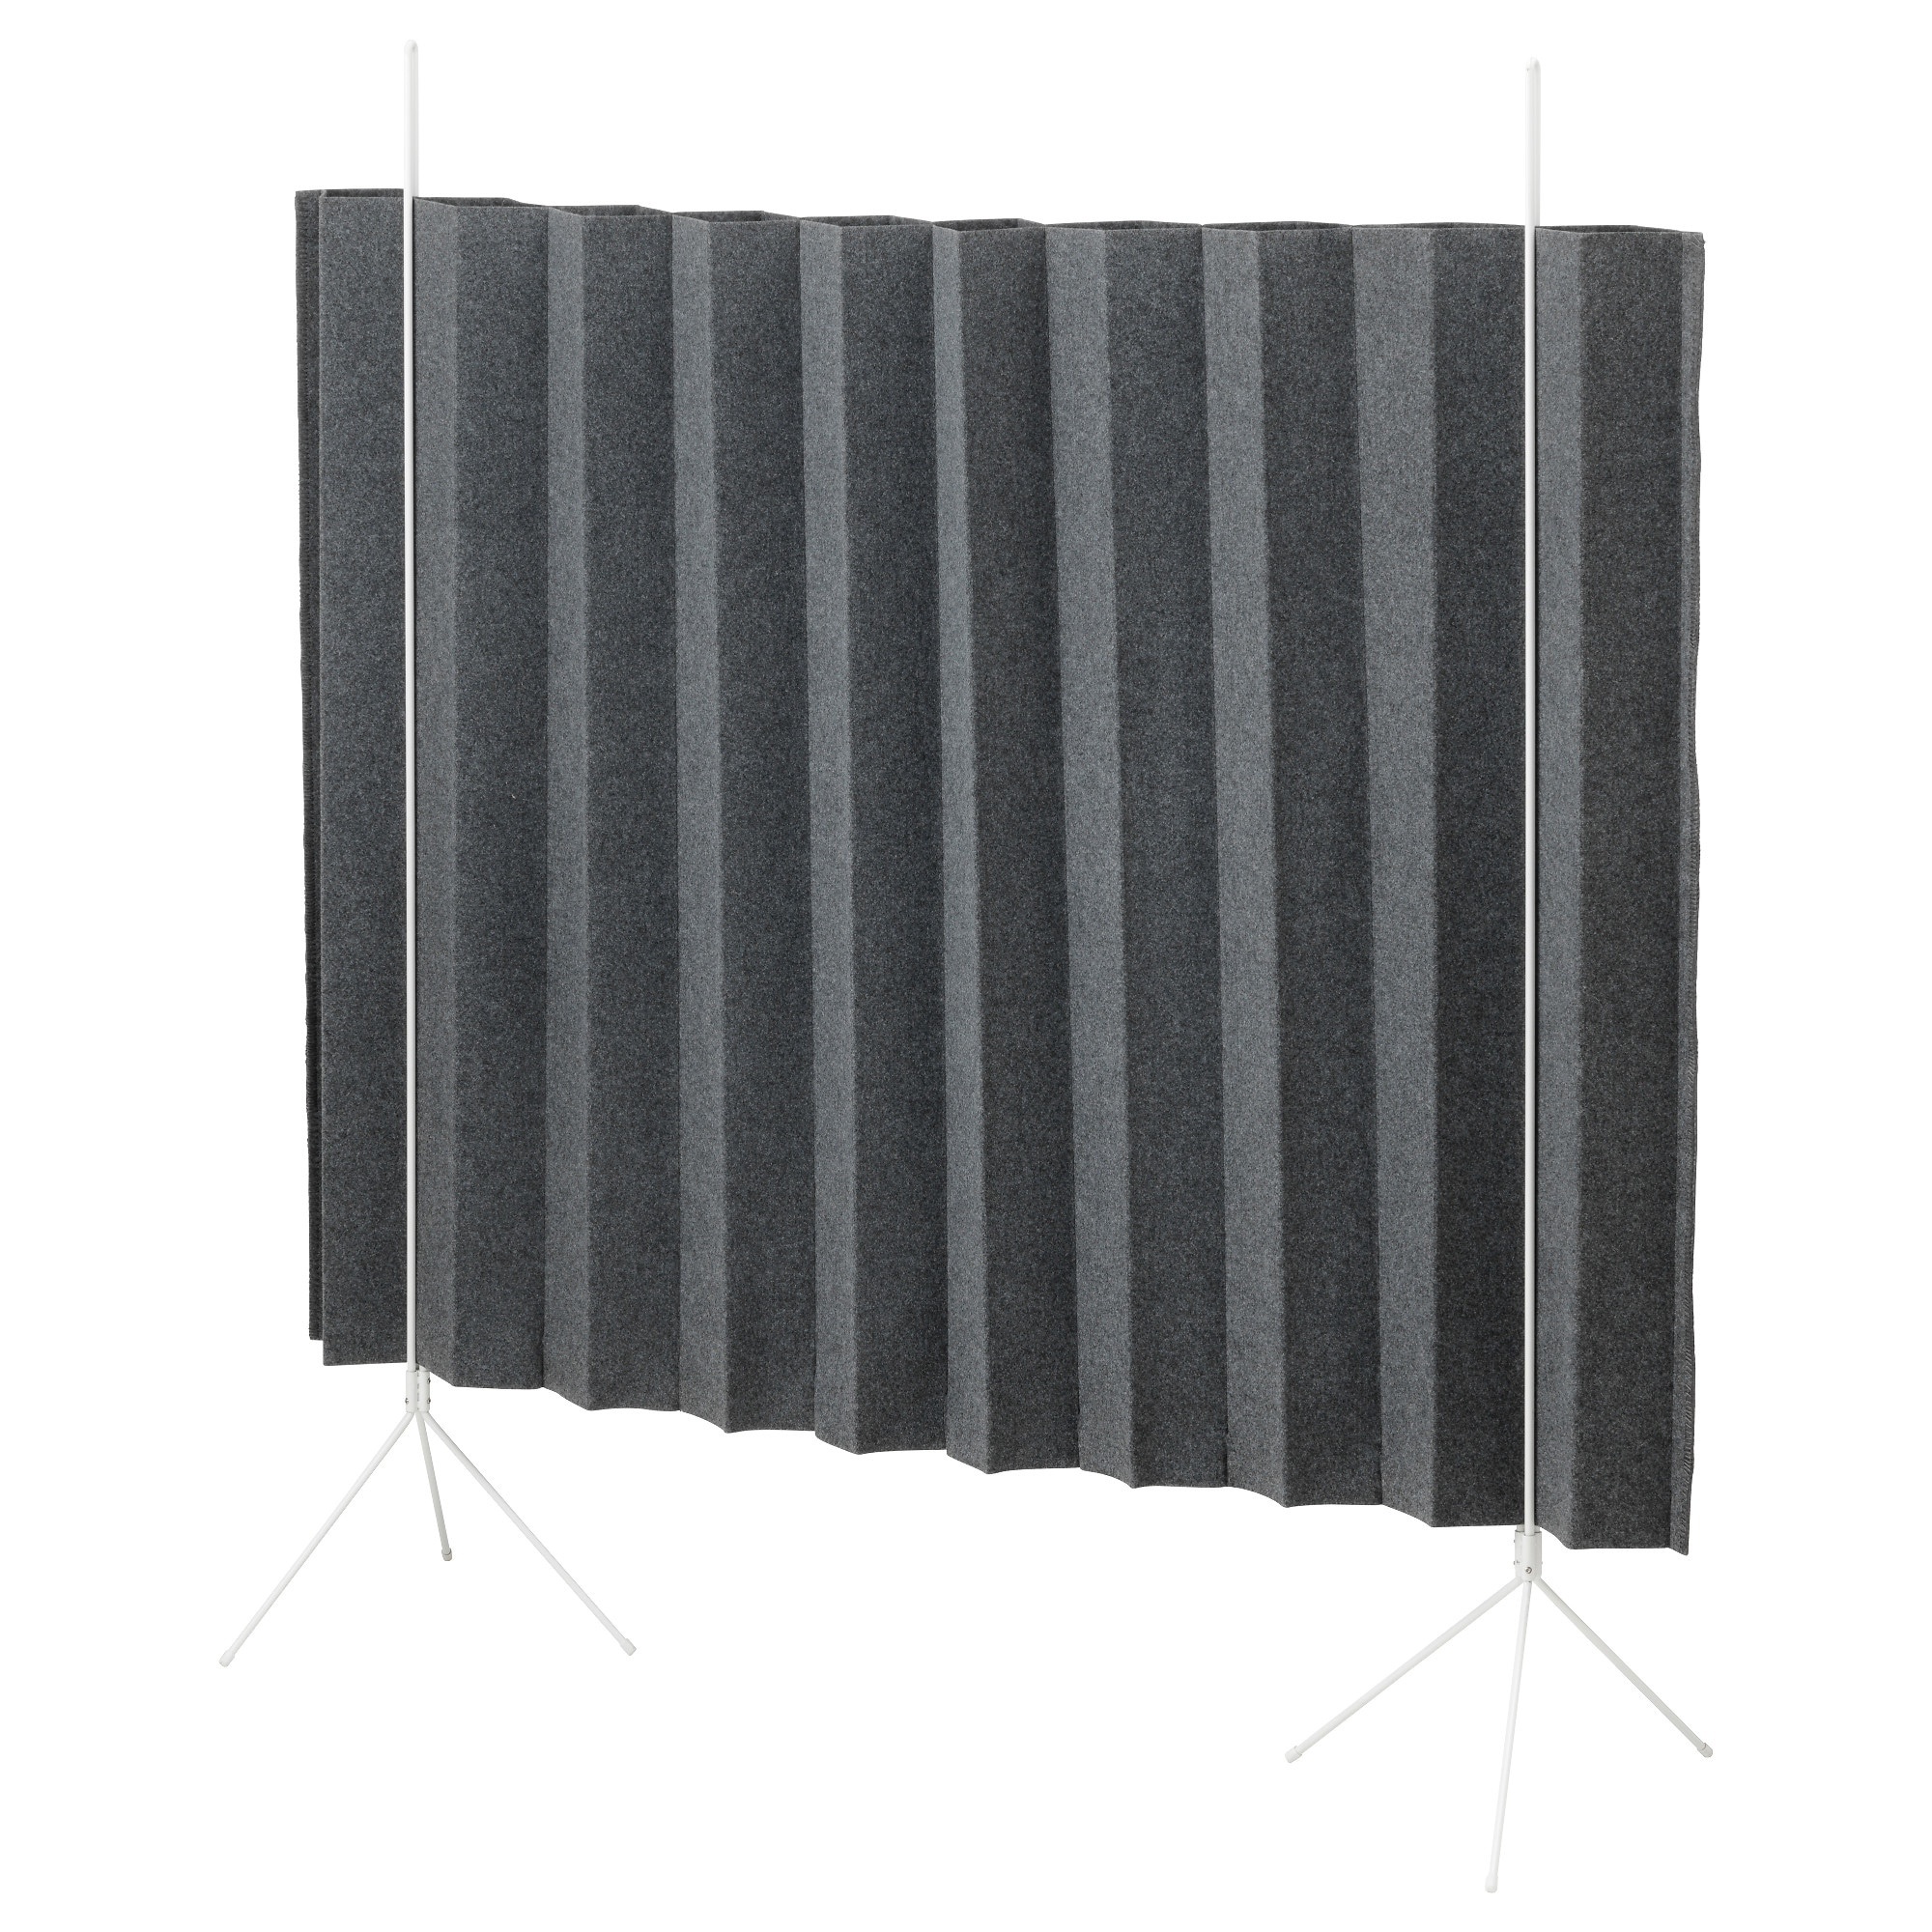 Clothes Racks, Coat Racks \u0026 Room Dividers - IKEA